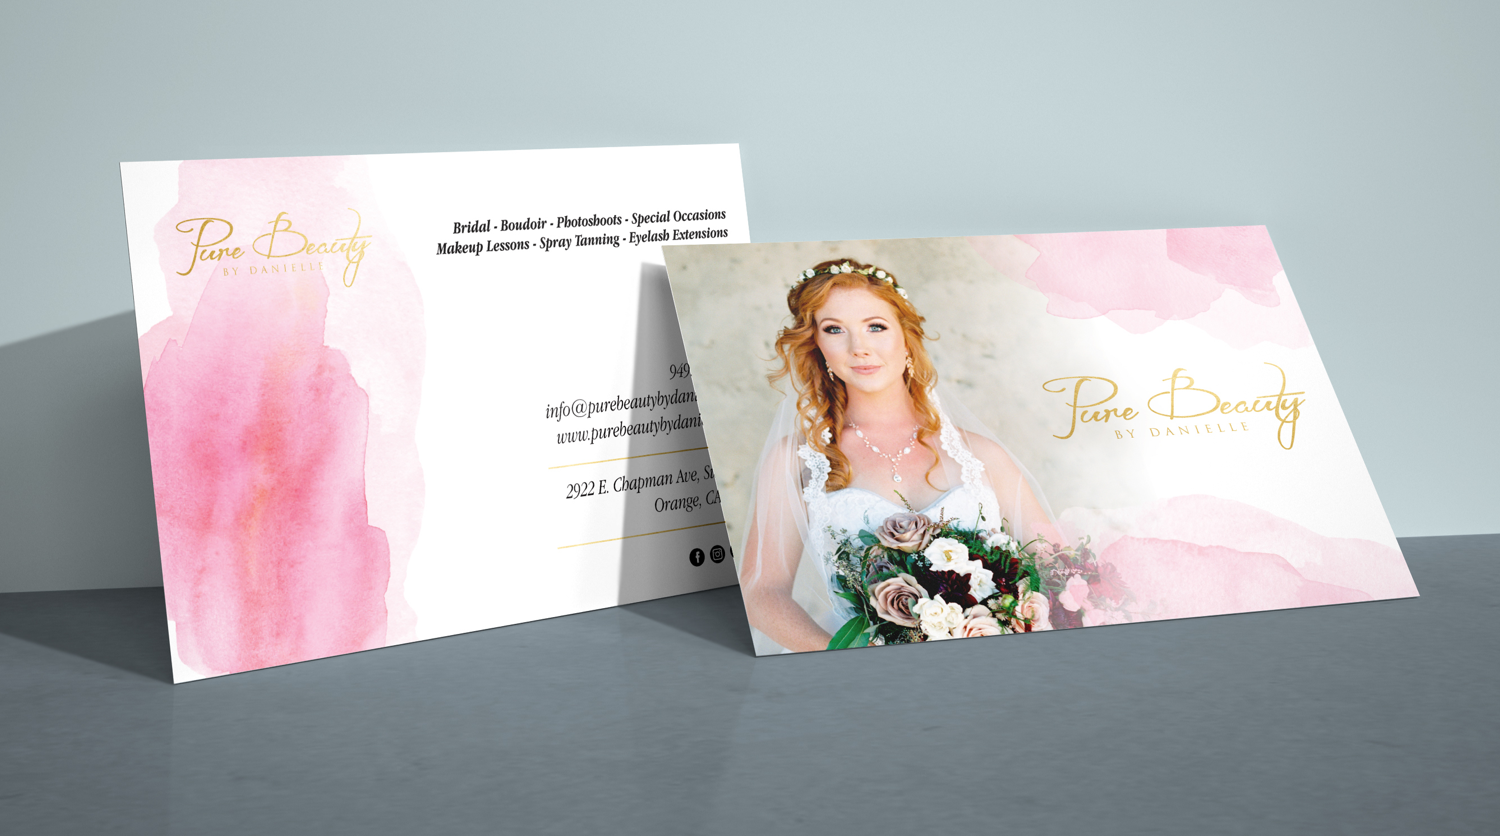 postcards offer a more impactful way remind people of your services